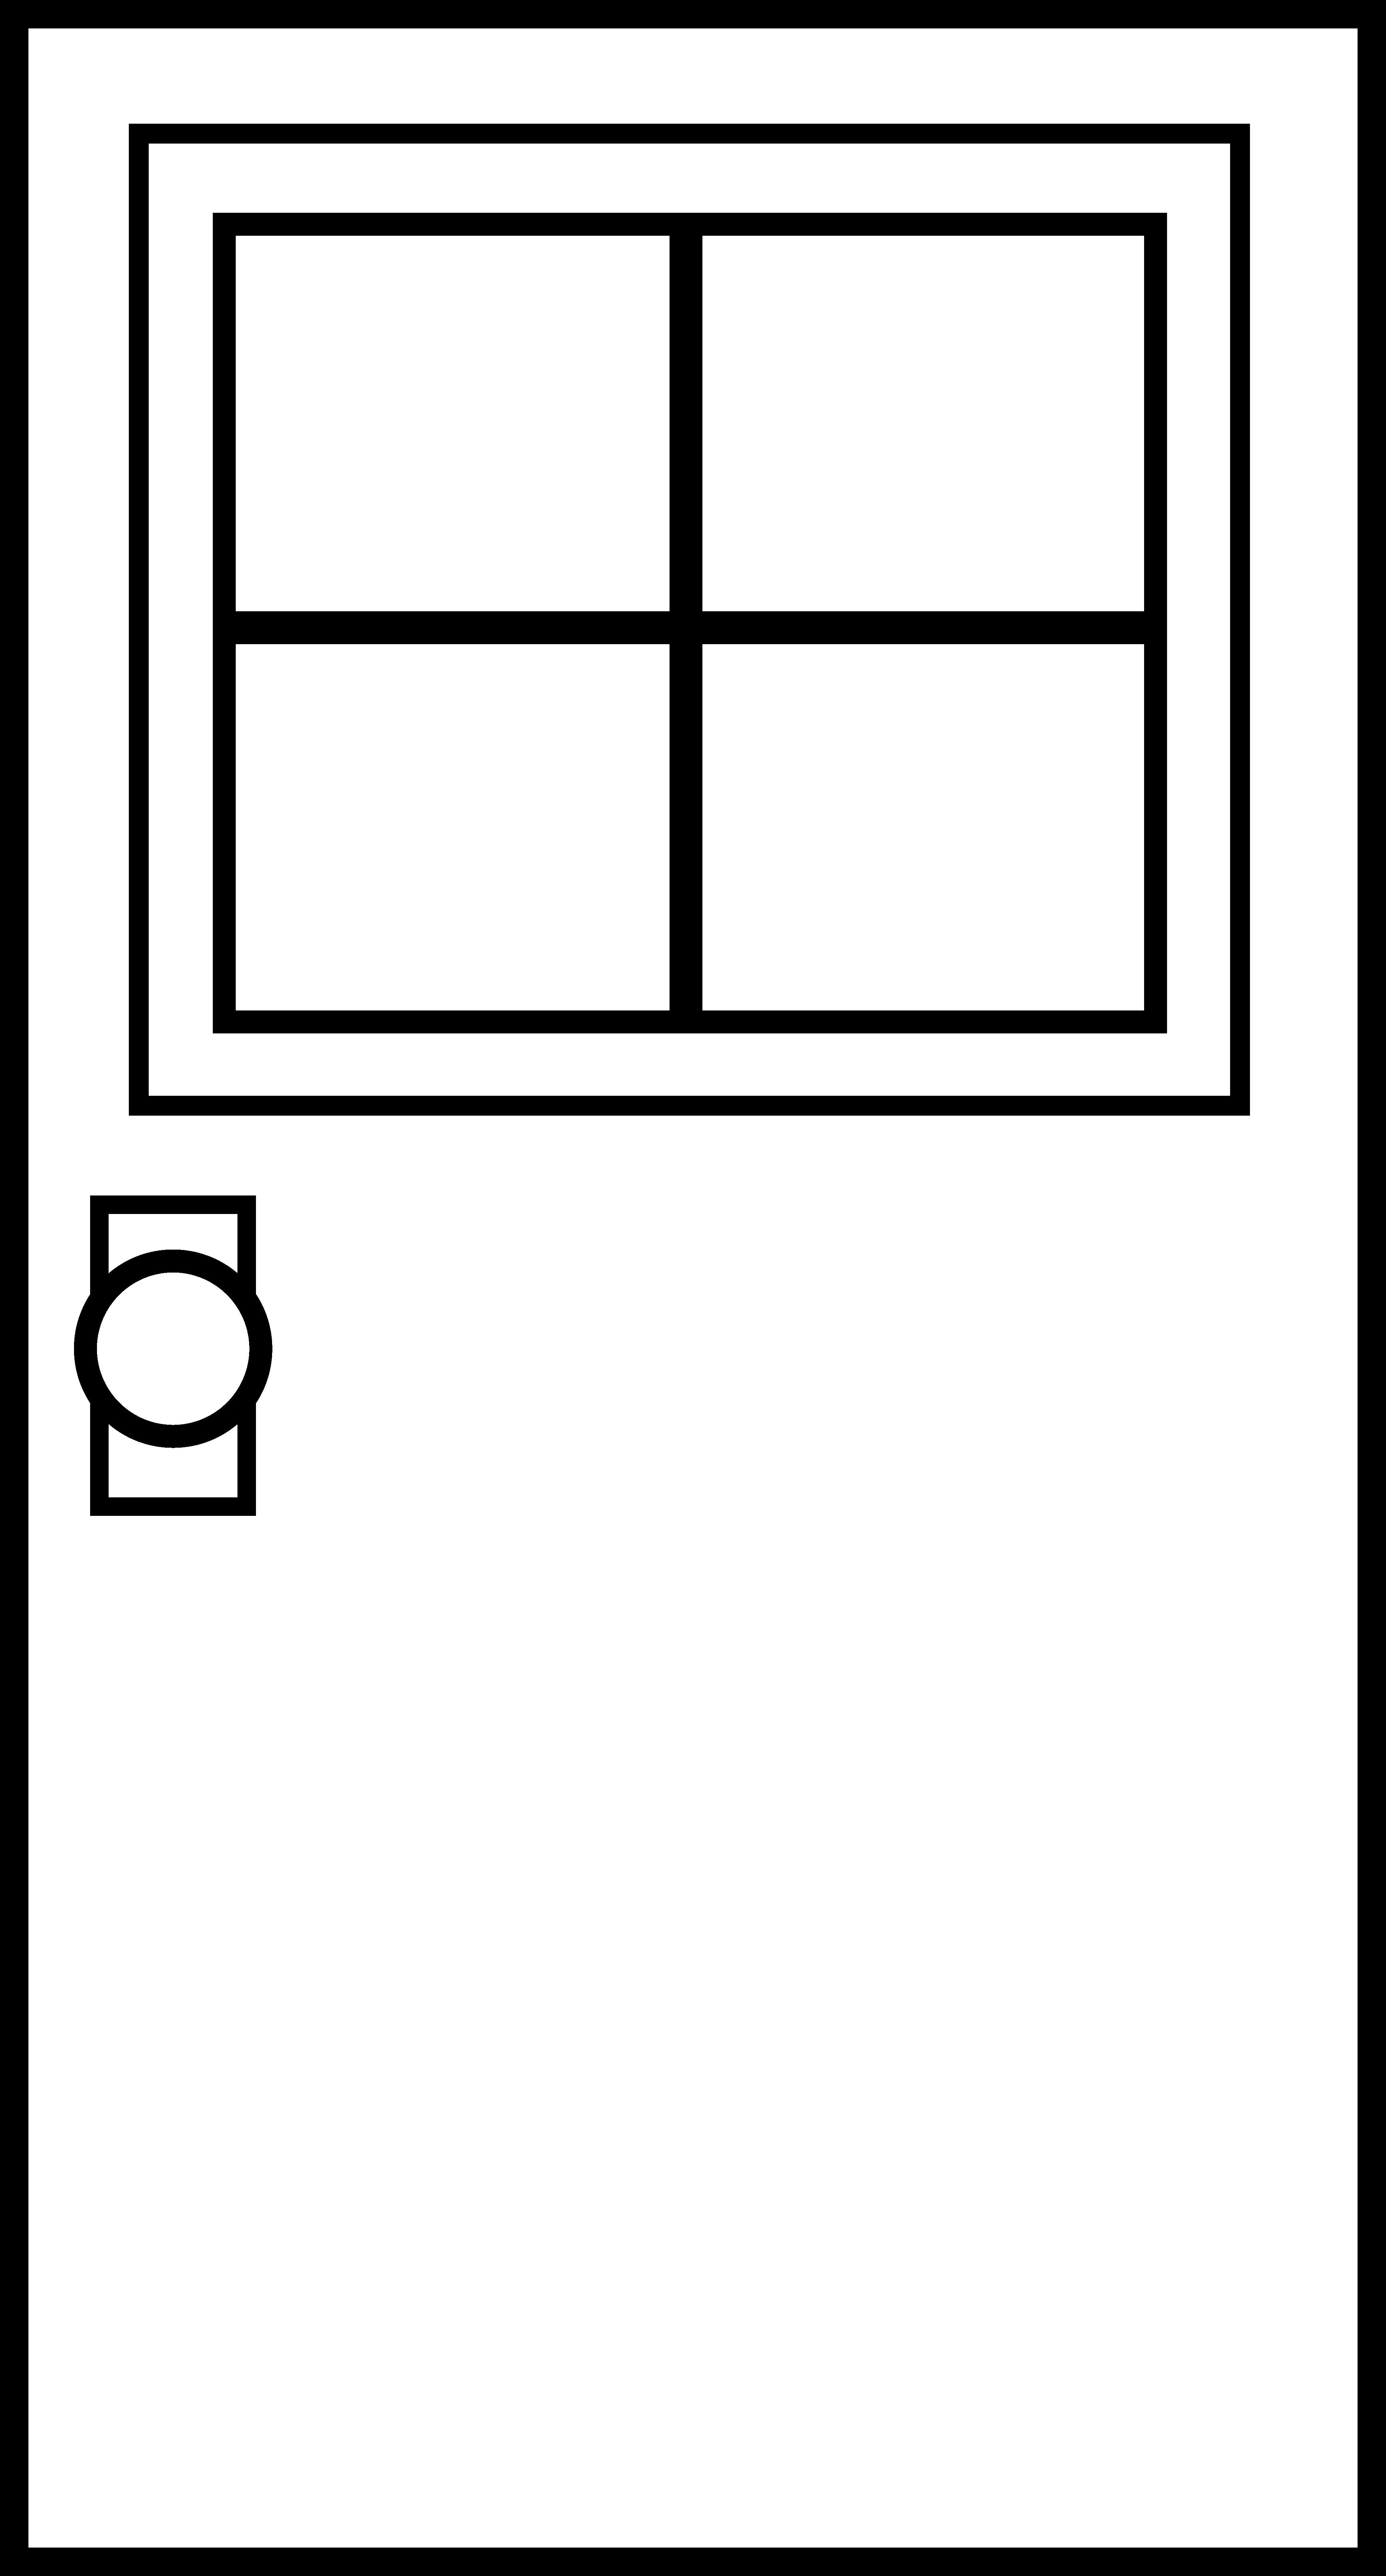 Window black and white clipart panda free clipart images for Window door images